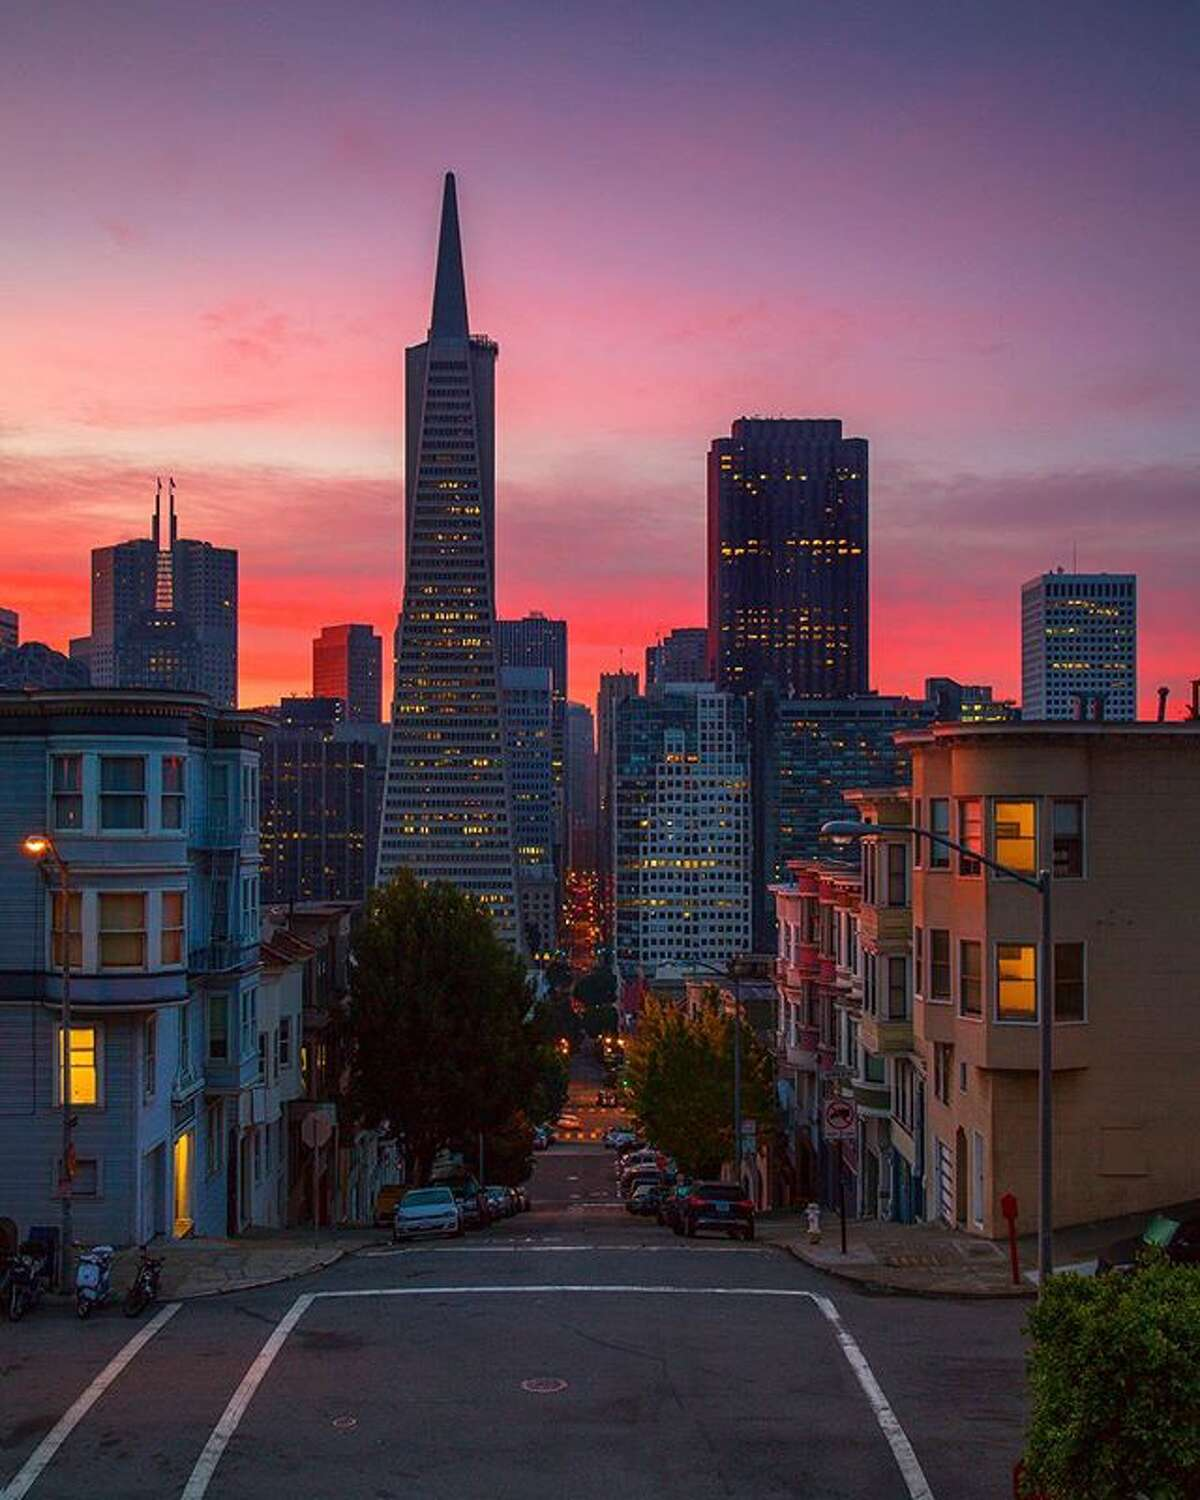 @awesternlens photographed a beautiful sunrise in San Francisco.